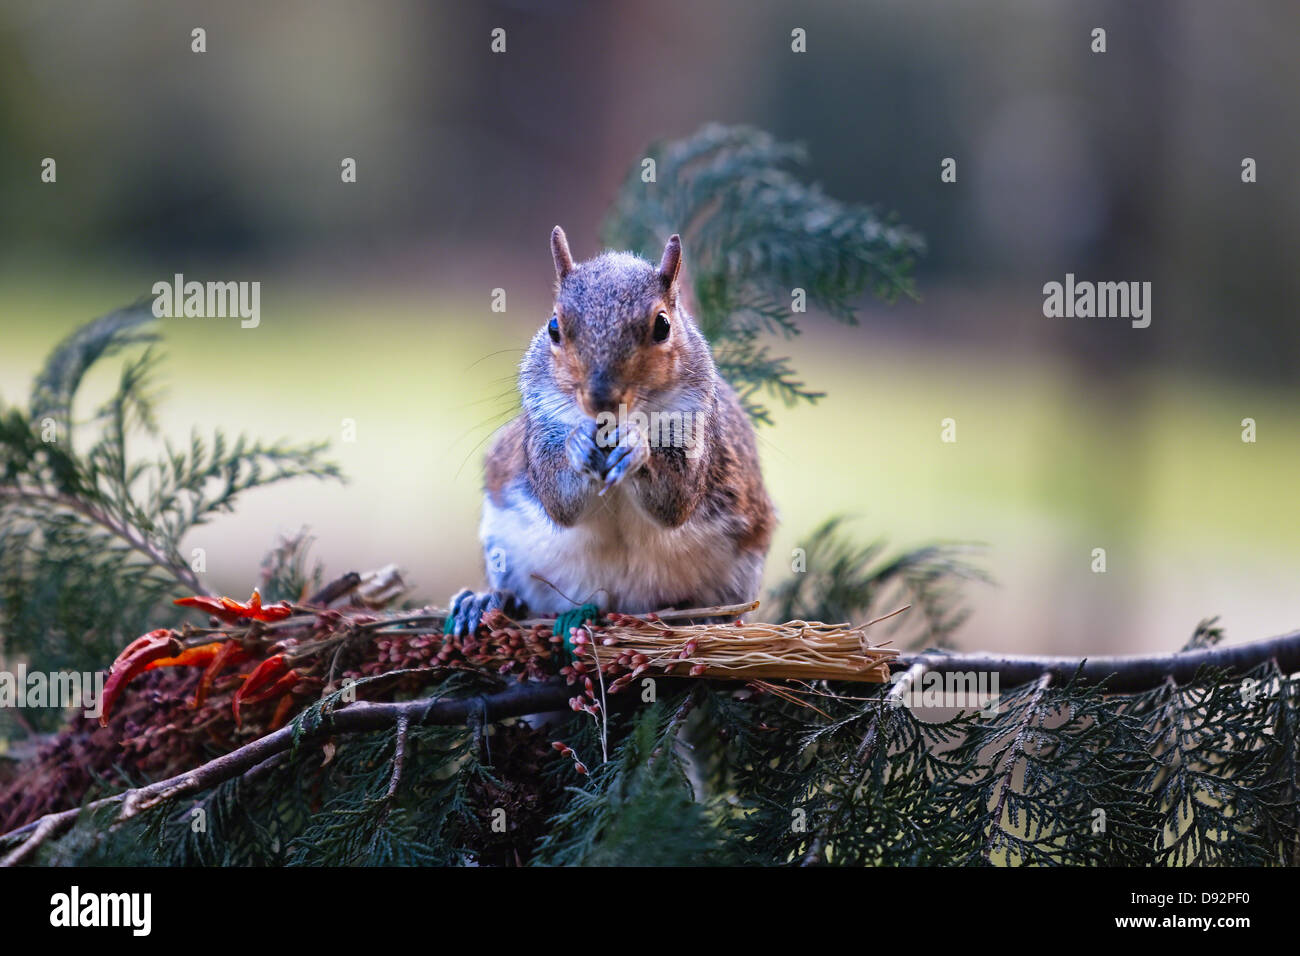 A Tree Squirrel is Eating Nuts on a Tree Branch - Stock Image